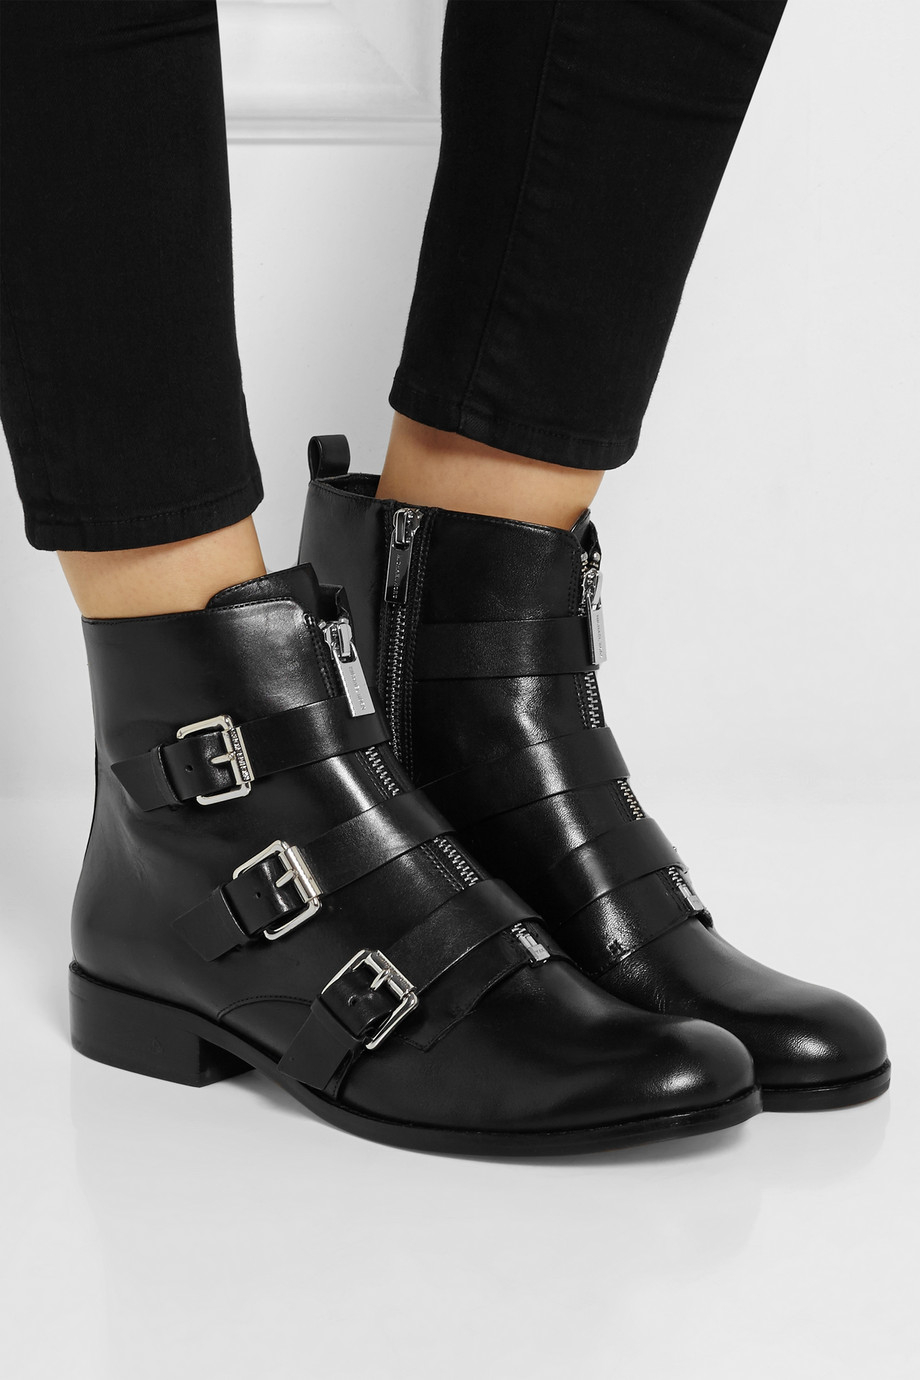 michael michael kors anya leather ankle boots in black lyst. Black Bedroom Furniture Sets. Home Design Ideas